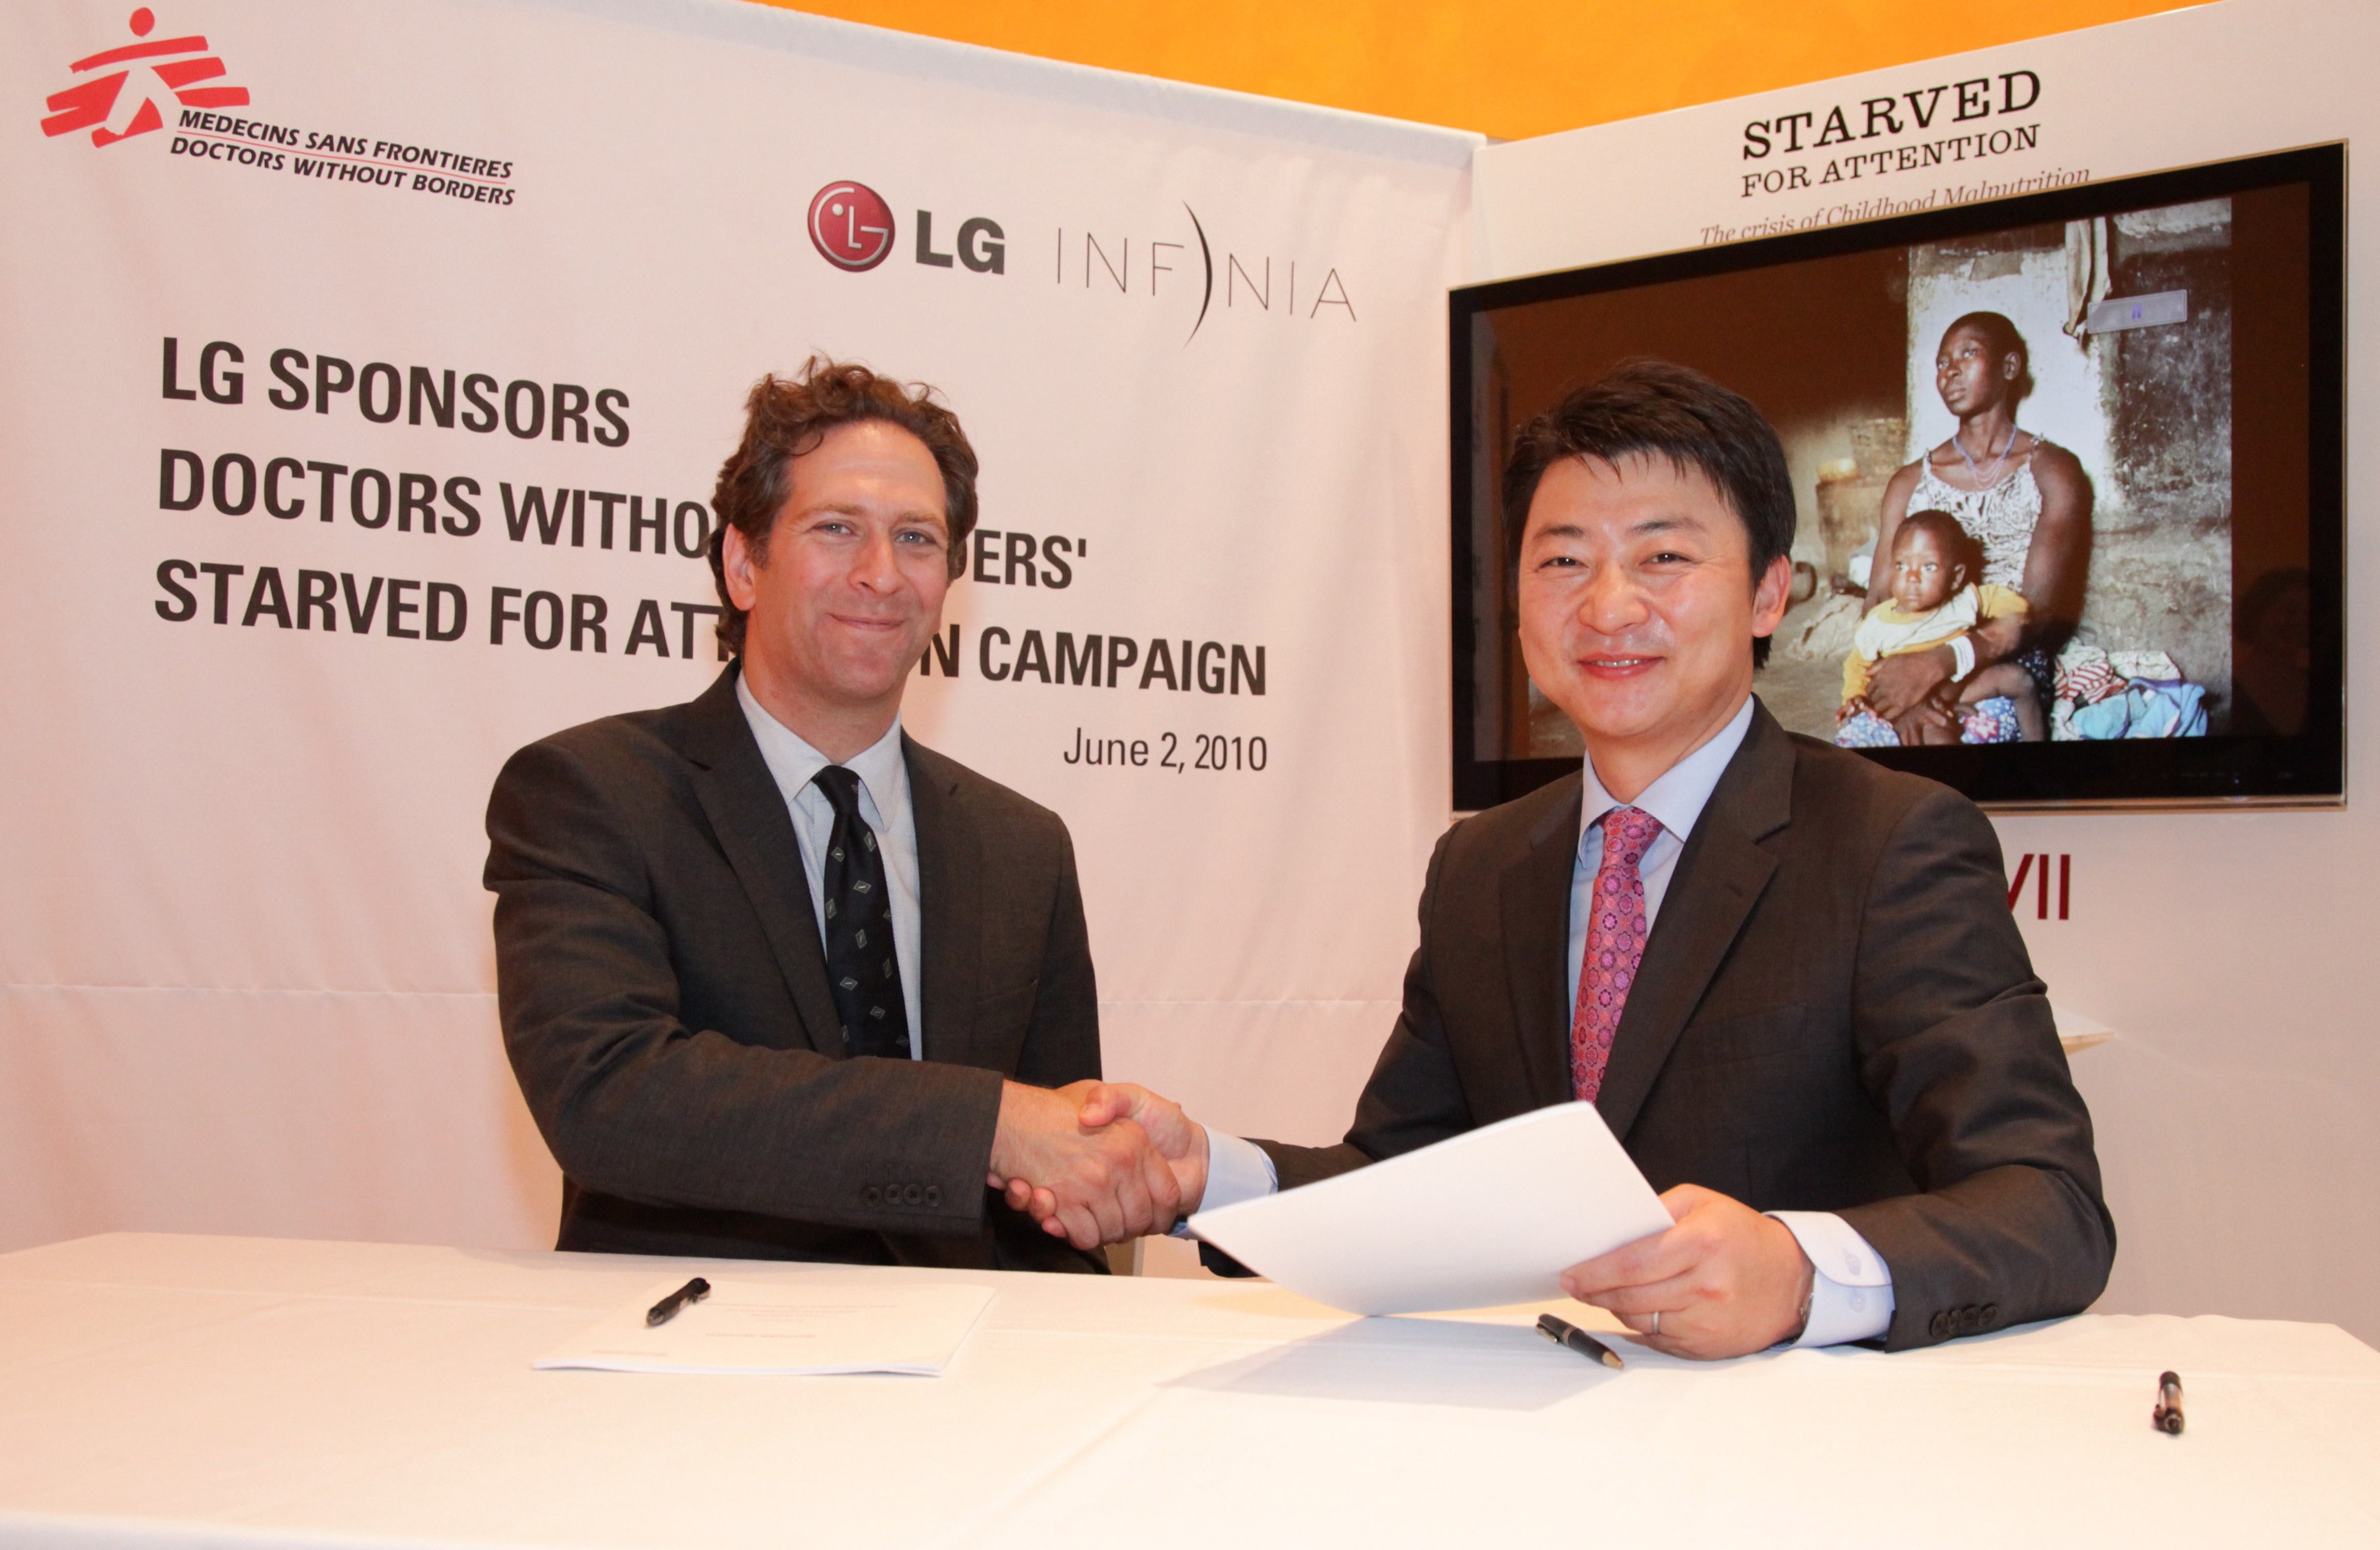 LG To Support Doctors Without Borders Campaign Fight Malnutrition